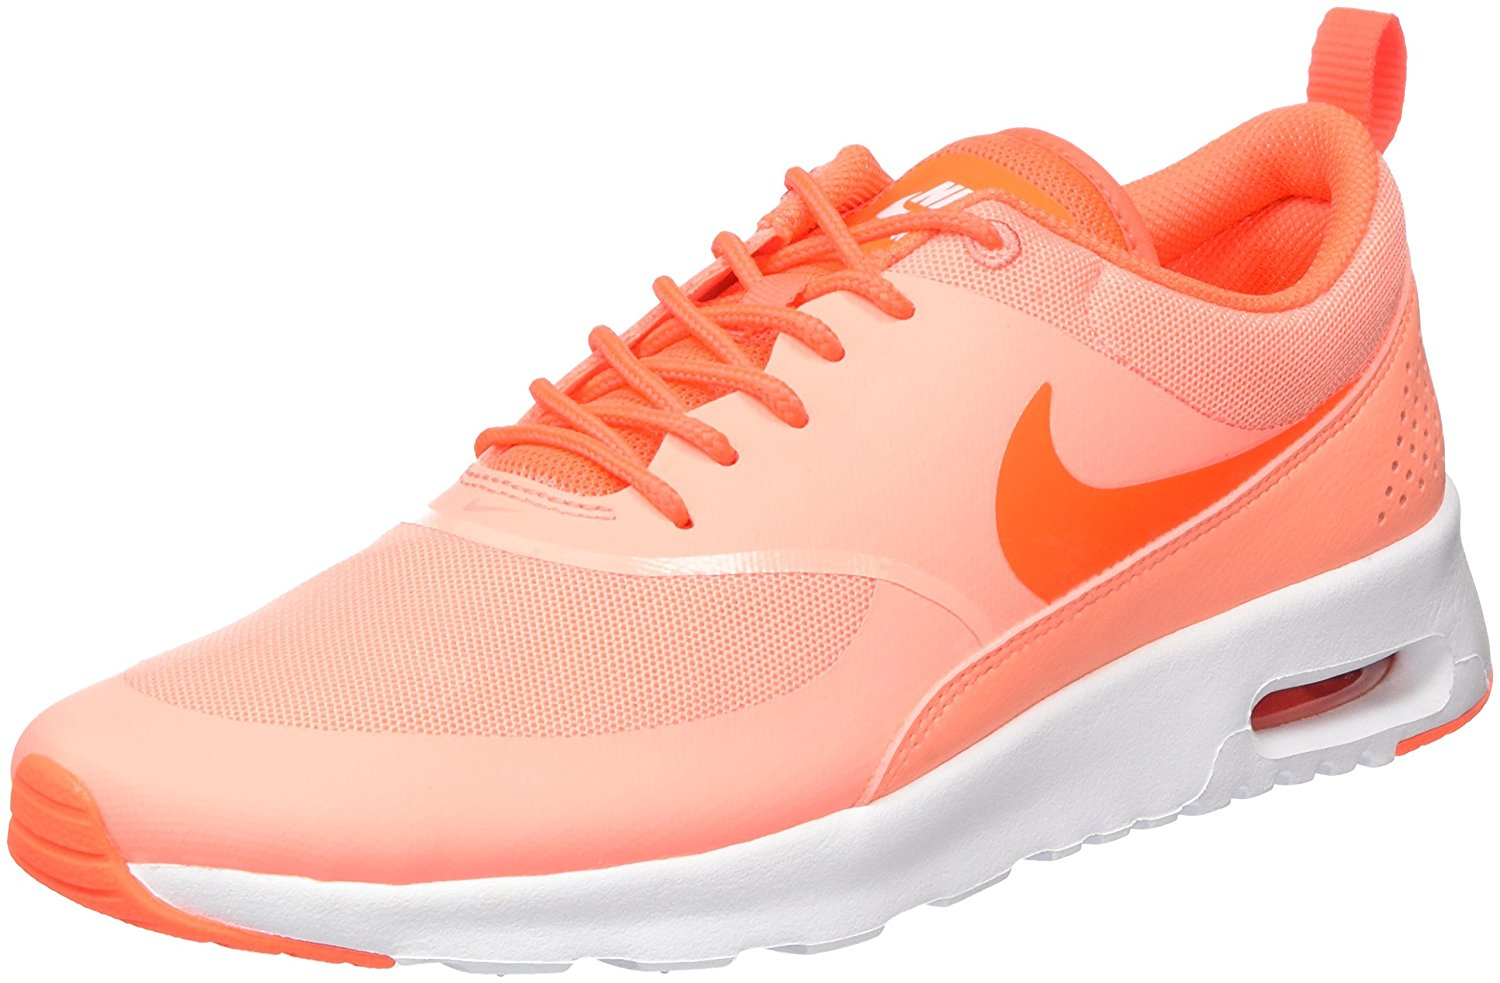 8f8bd534ce Cheap Pink Nike Air Thea, find Pink Nike Air Thea deals on line at ...